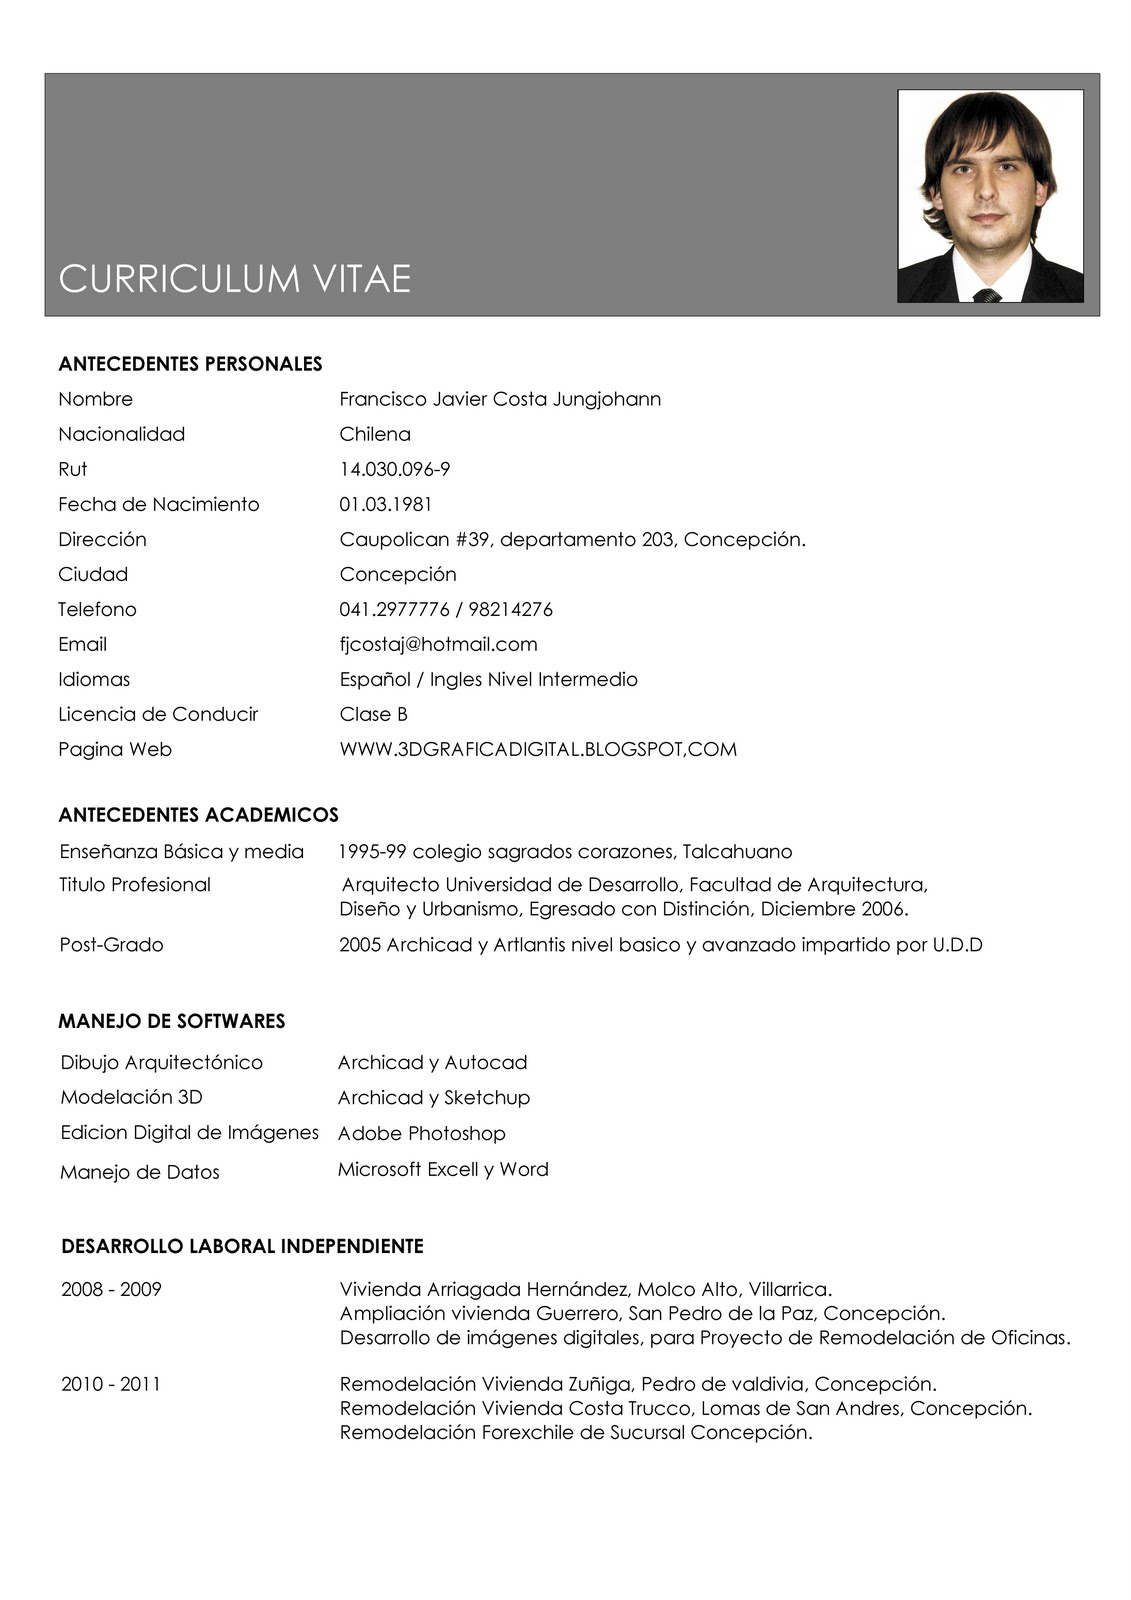 curriculum vitae layout nz sample cv writing service curriculum vitae layout nz curriculum vitae cv format the balance photo curriculum vita images